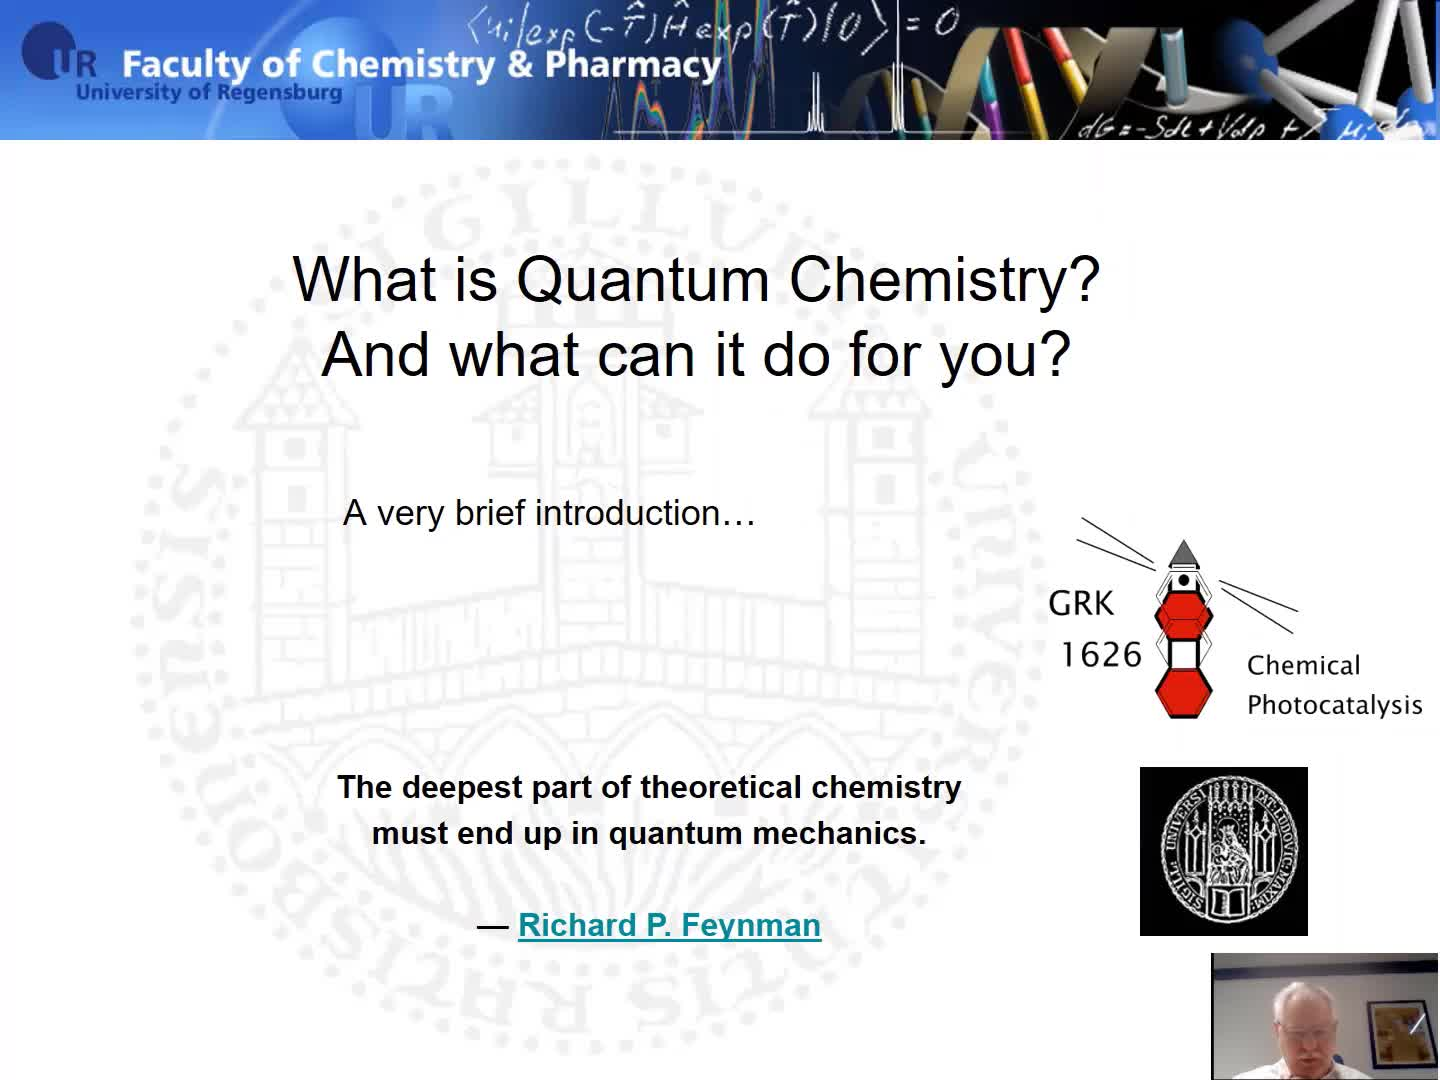 What is Quantum Chemistry? And what can it do for you?